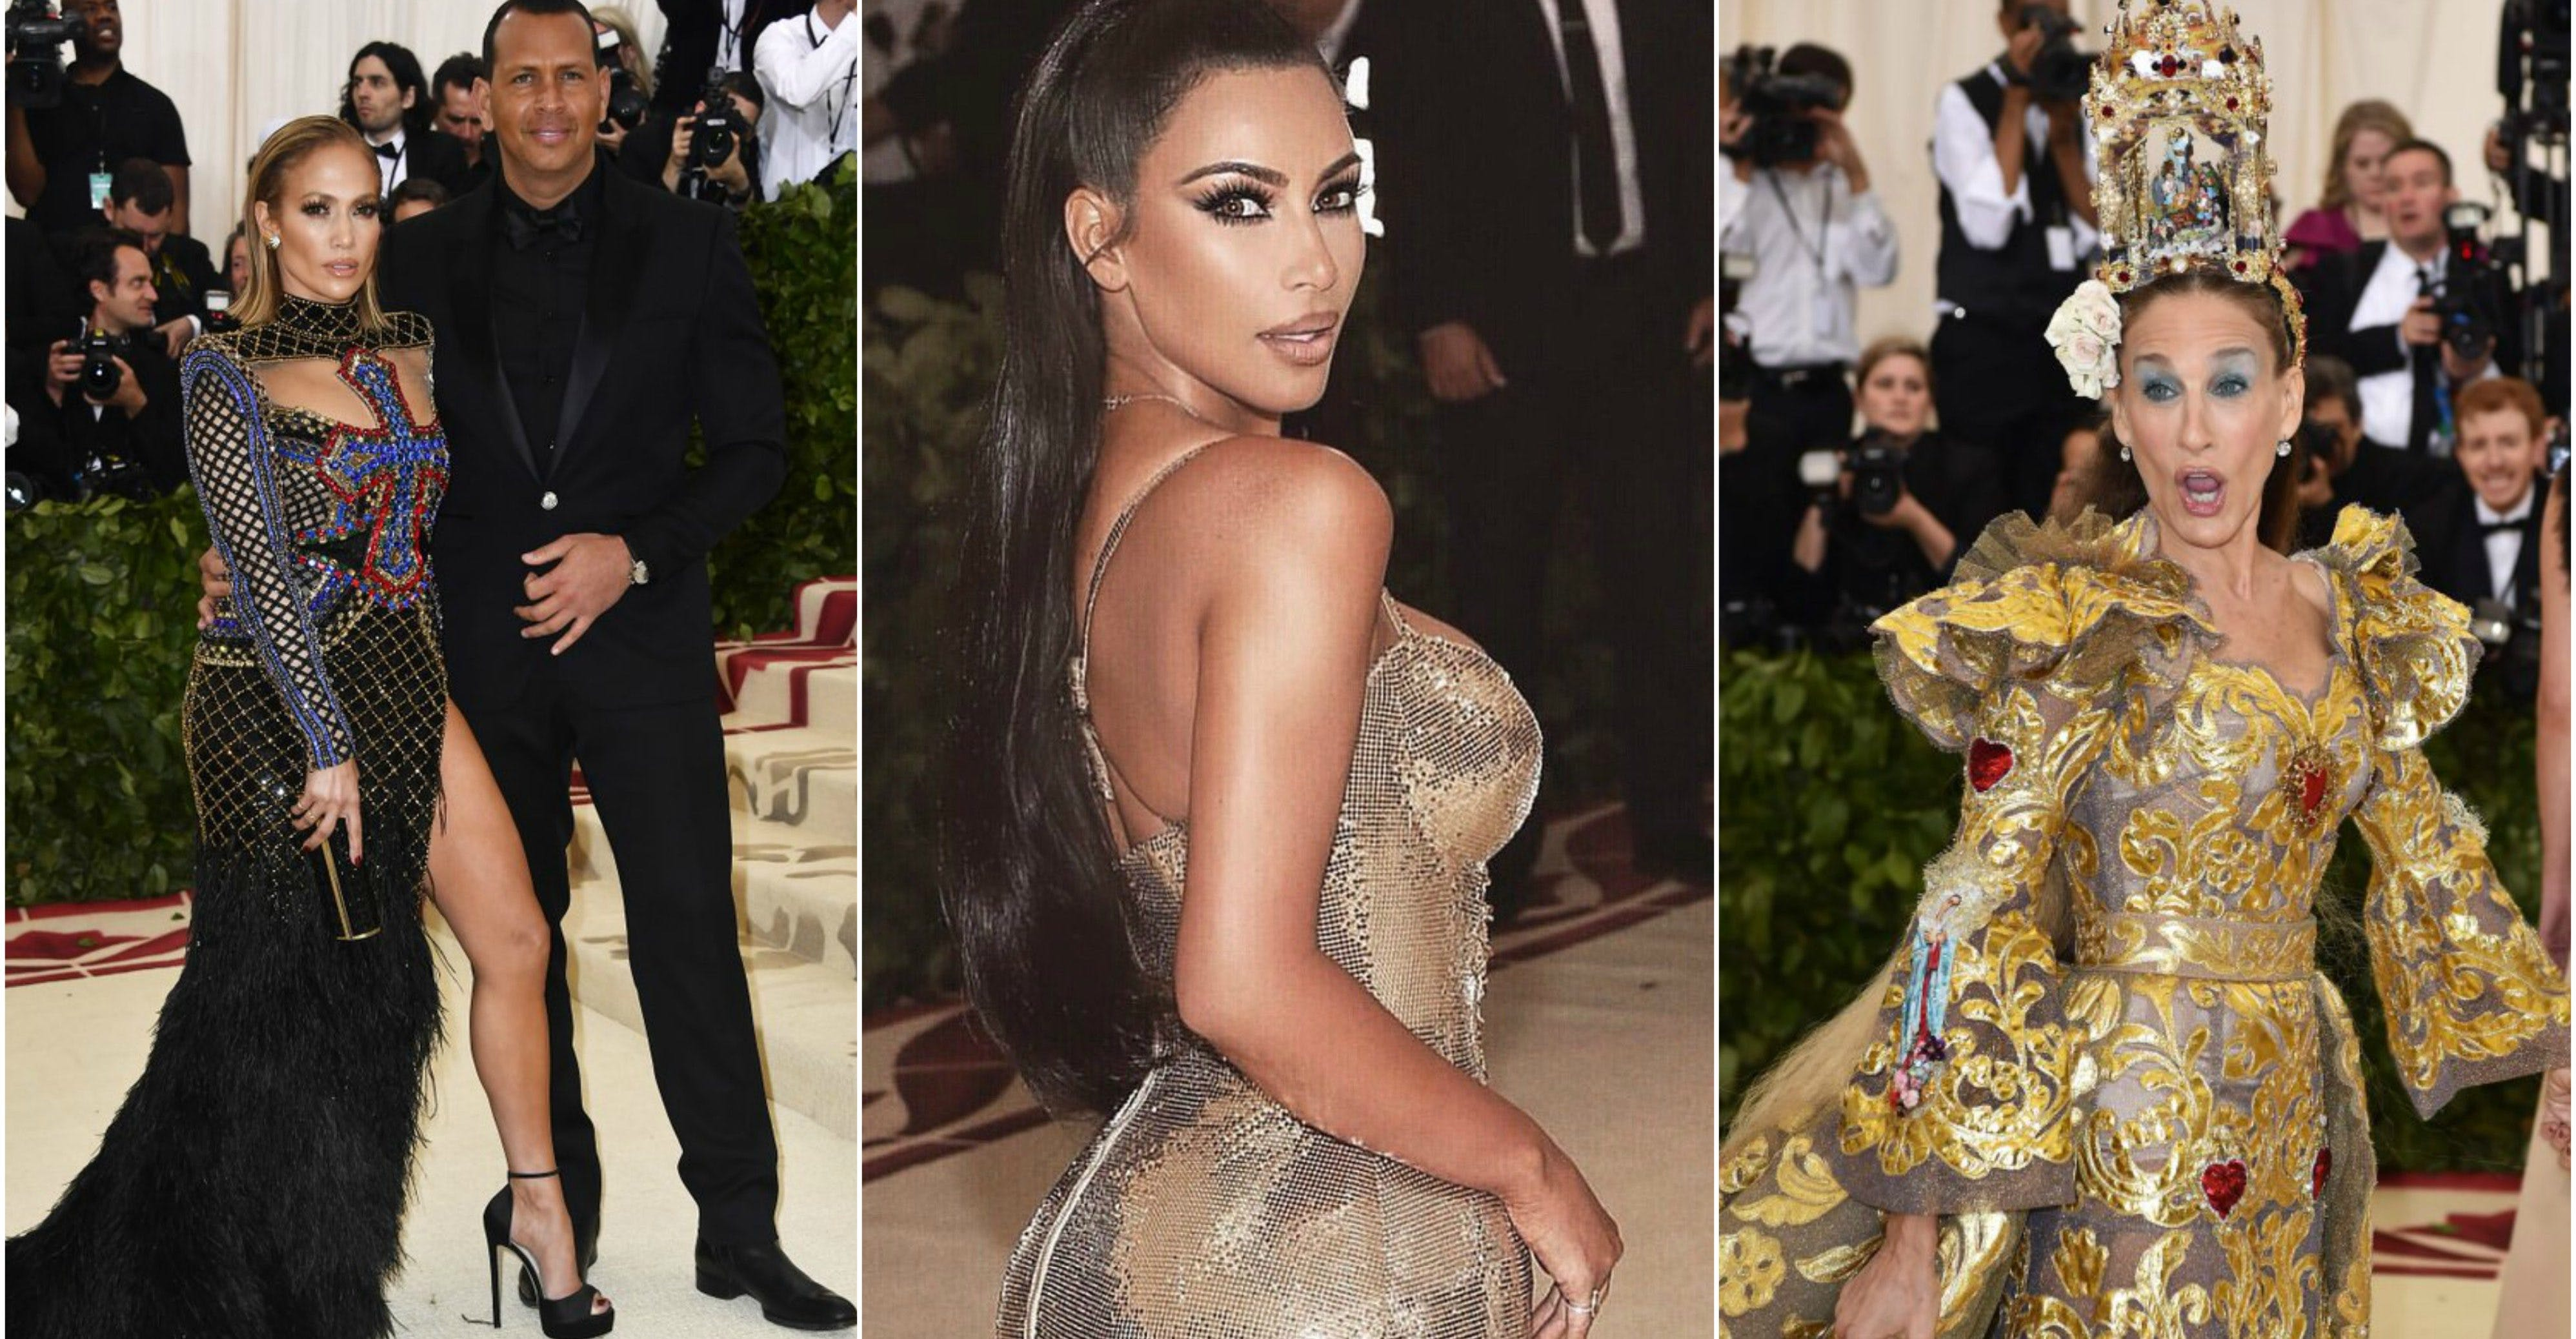 10 Celebs Who Got The Dress Code At The 2018 Met Gala (And 10 Who Didn't)